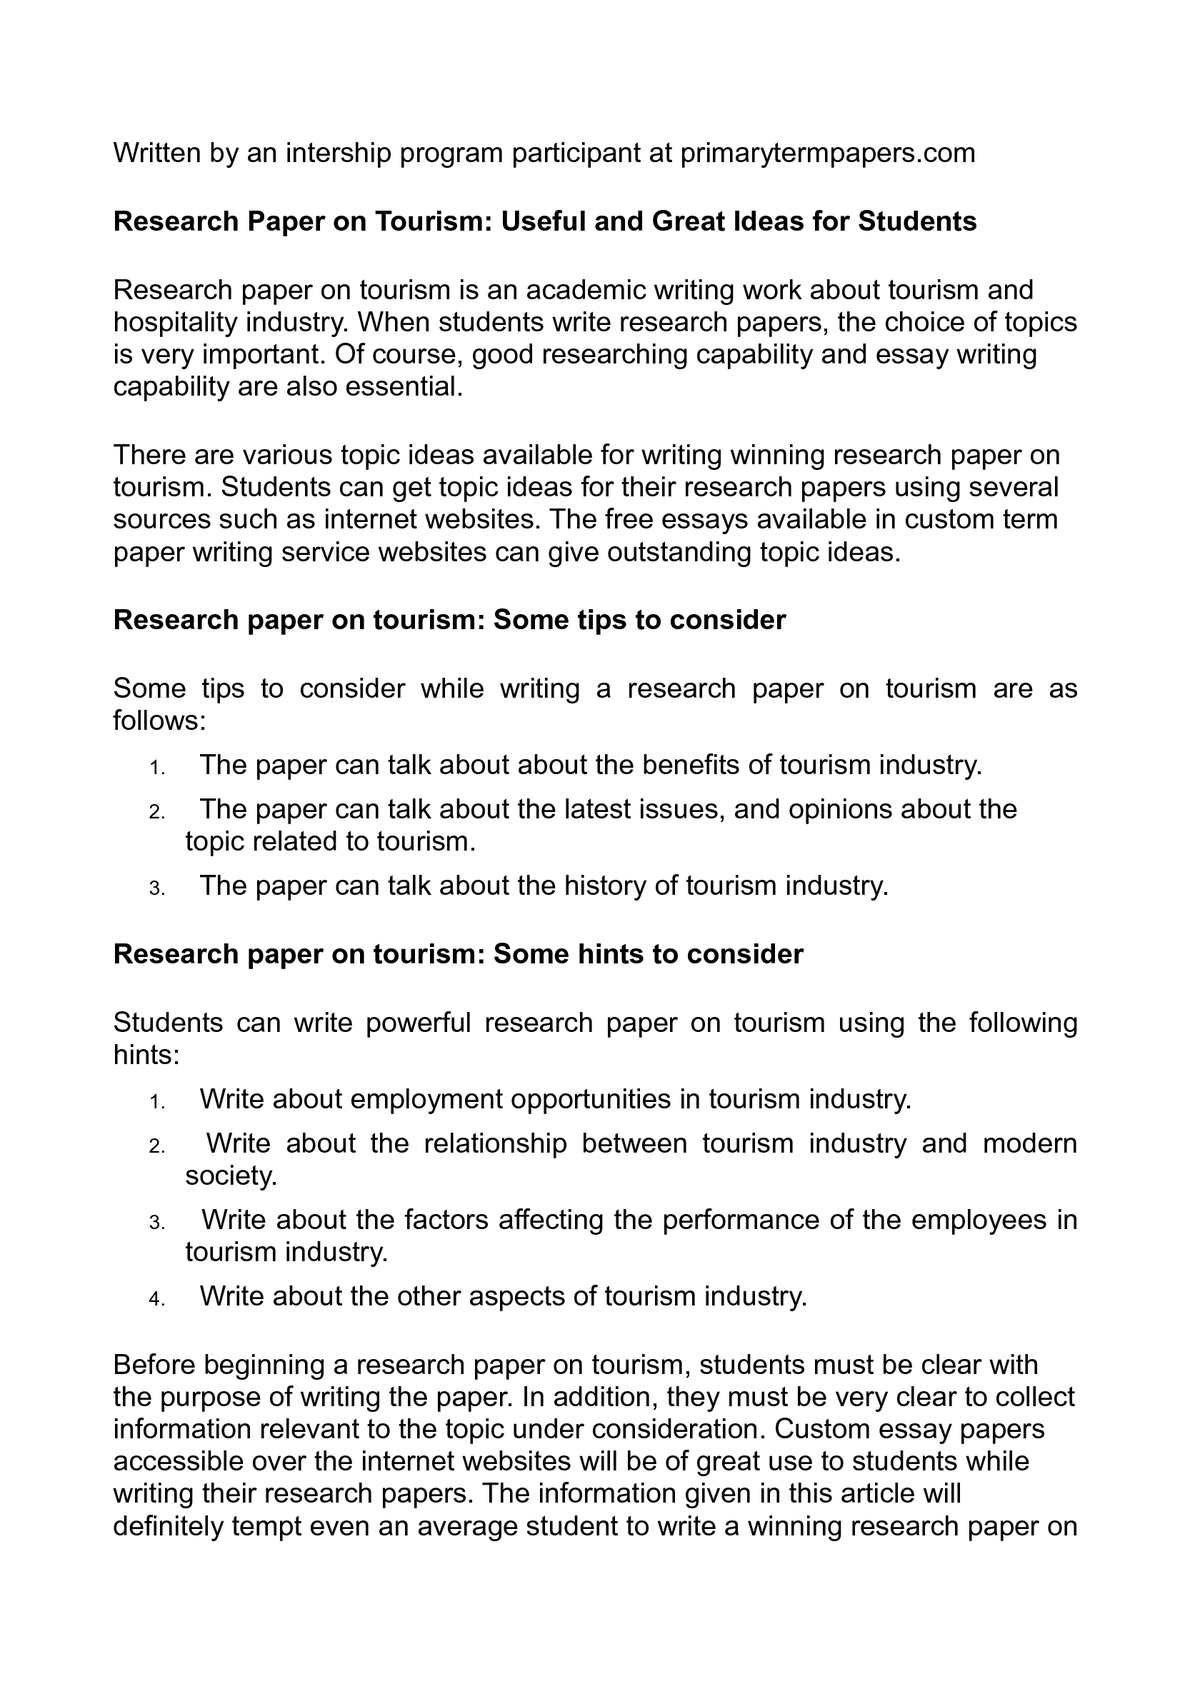 009 Research Paper Ideas For Fascinating Papers In Economics High School College Full